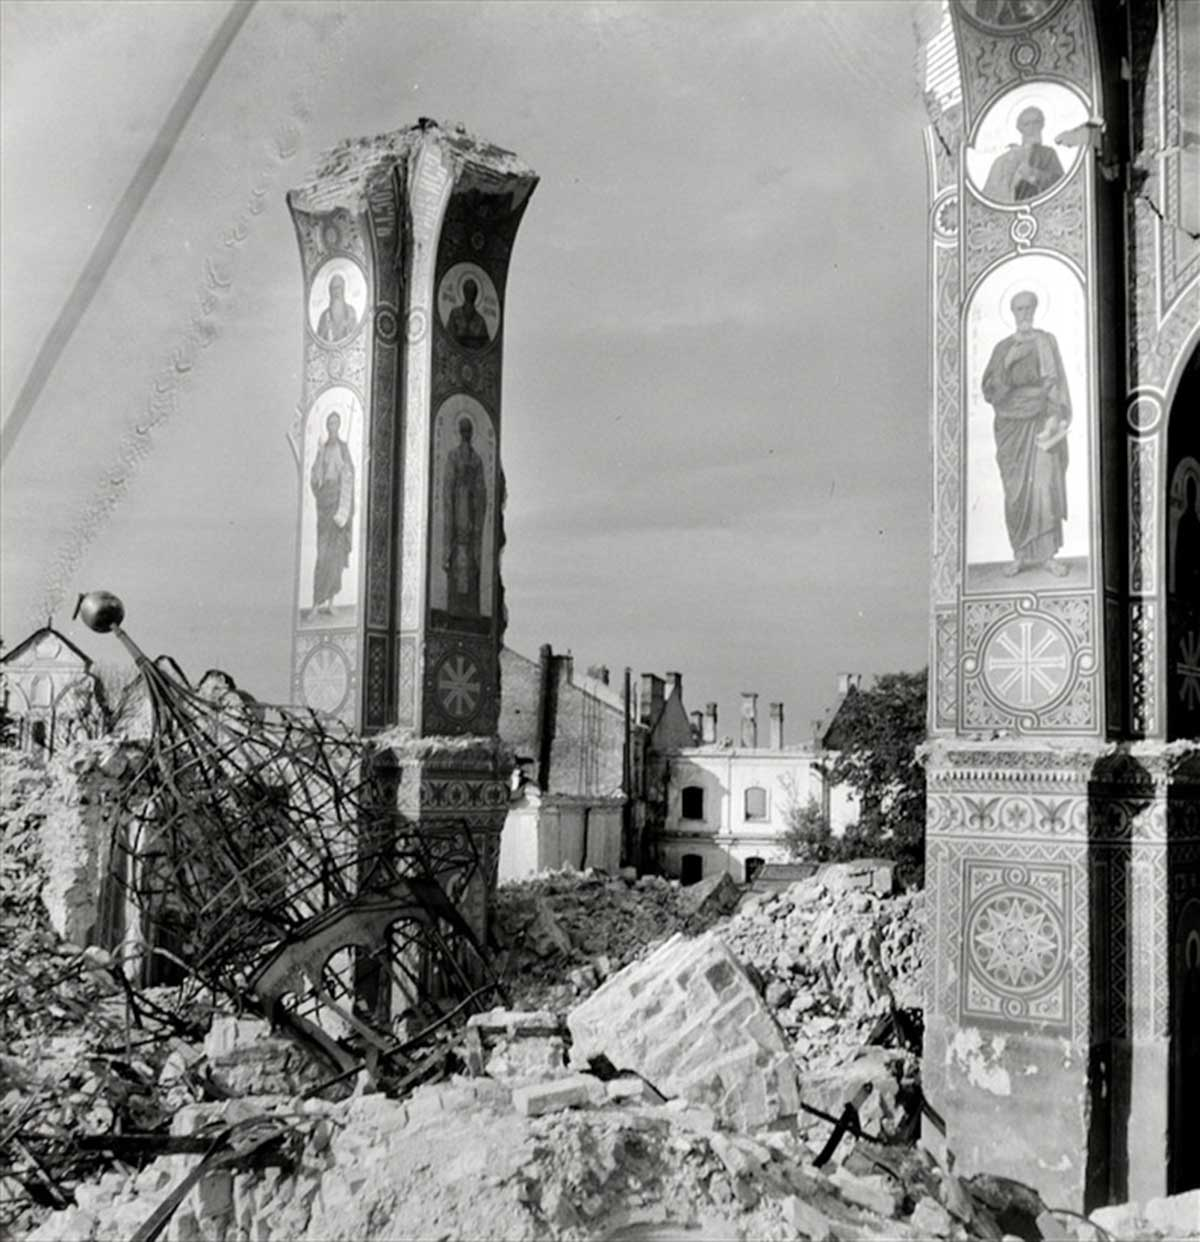 A destroyed cathedral.